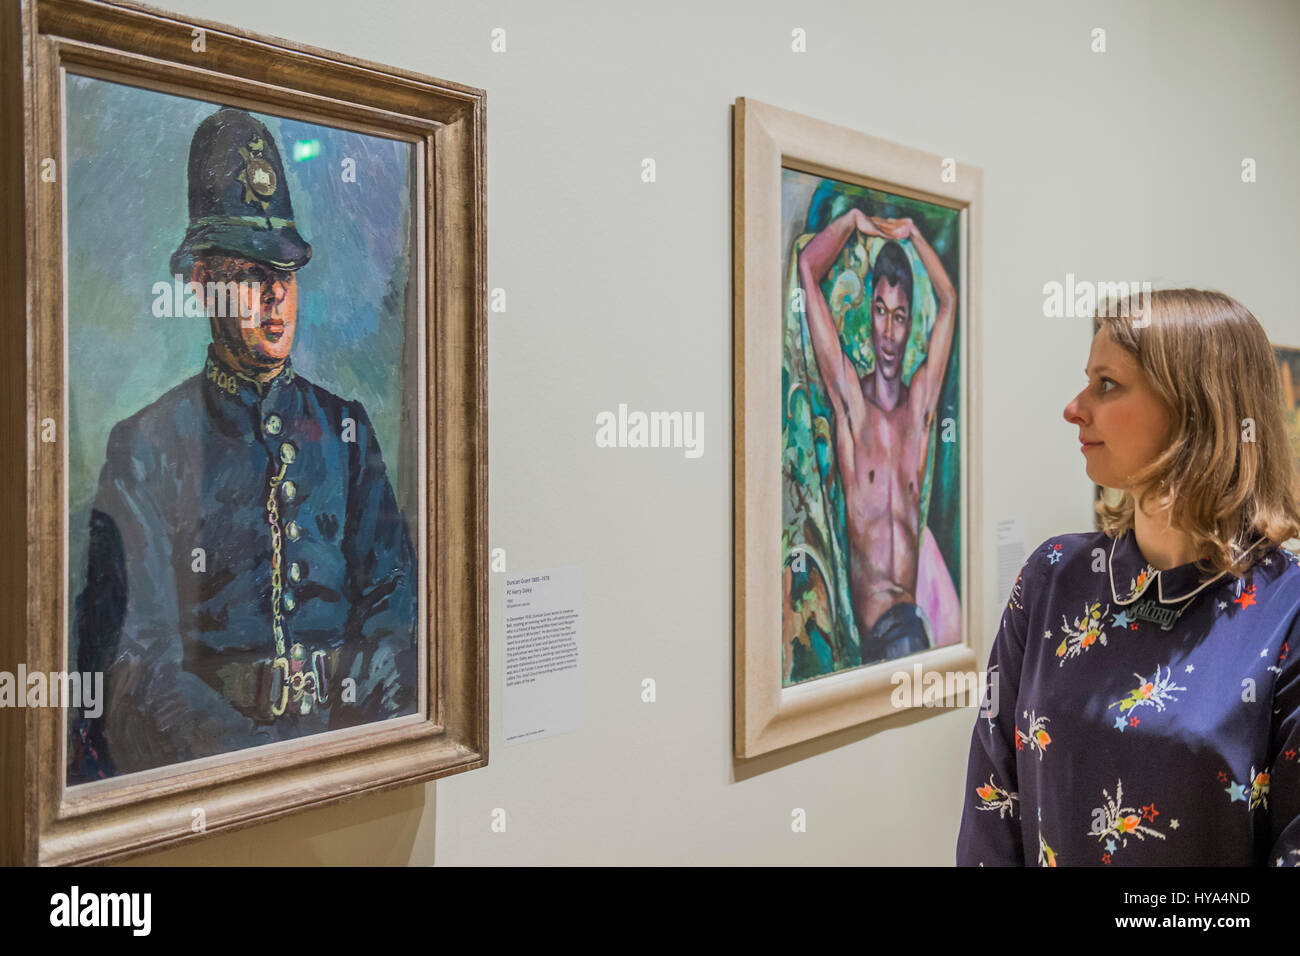 London, UK. 3rd Apr, 2017. PC Harry Daley by Duncan Grant and Portrait of Pat Neslon, 1930's, by Edward Wolfe - Stock Image